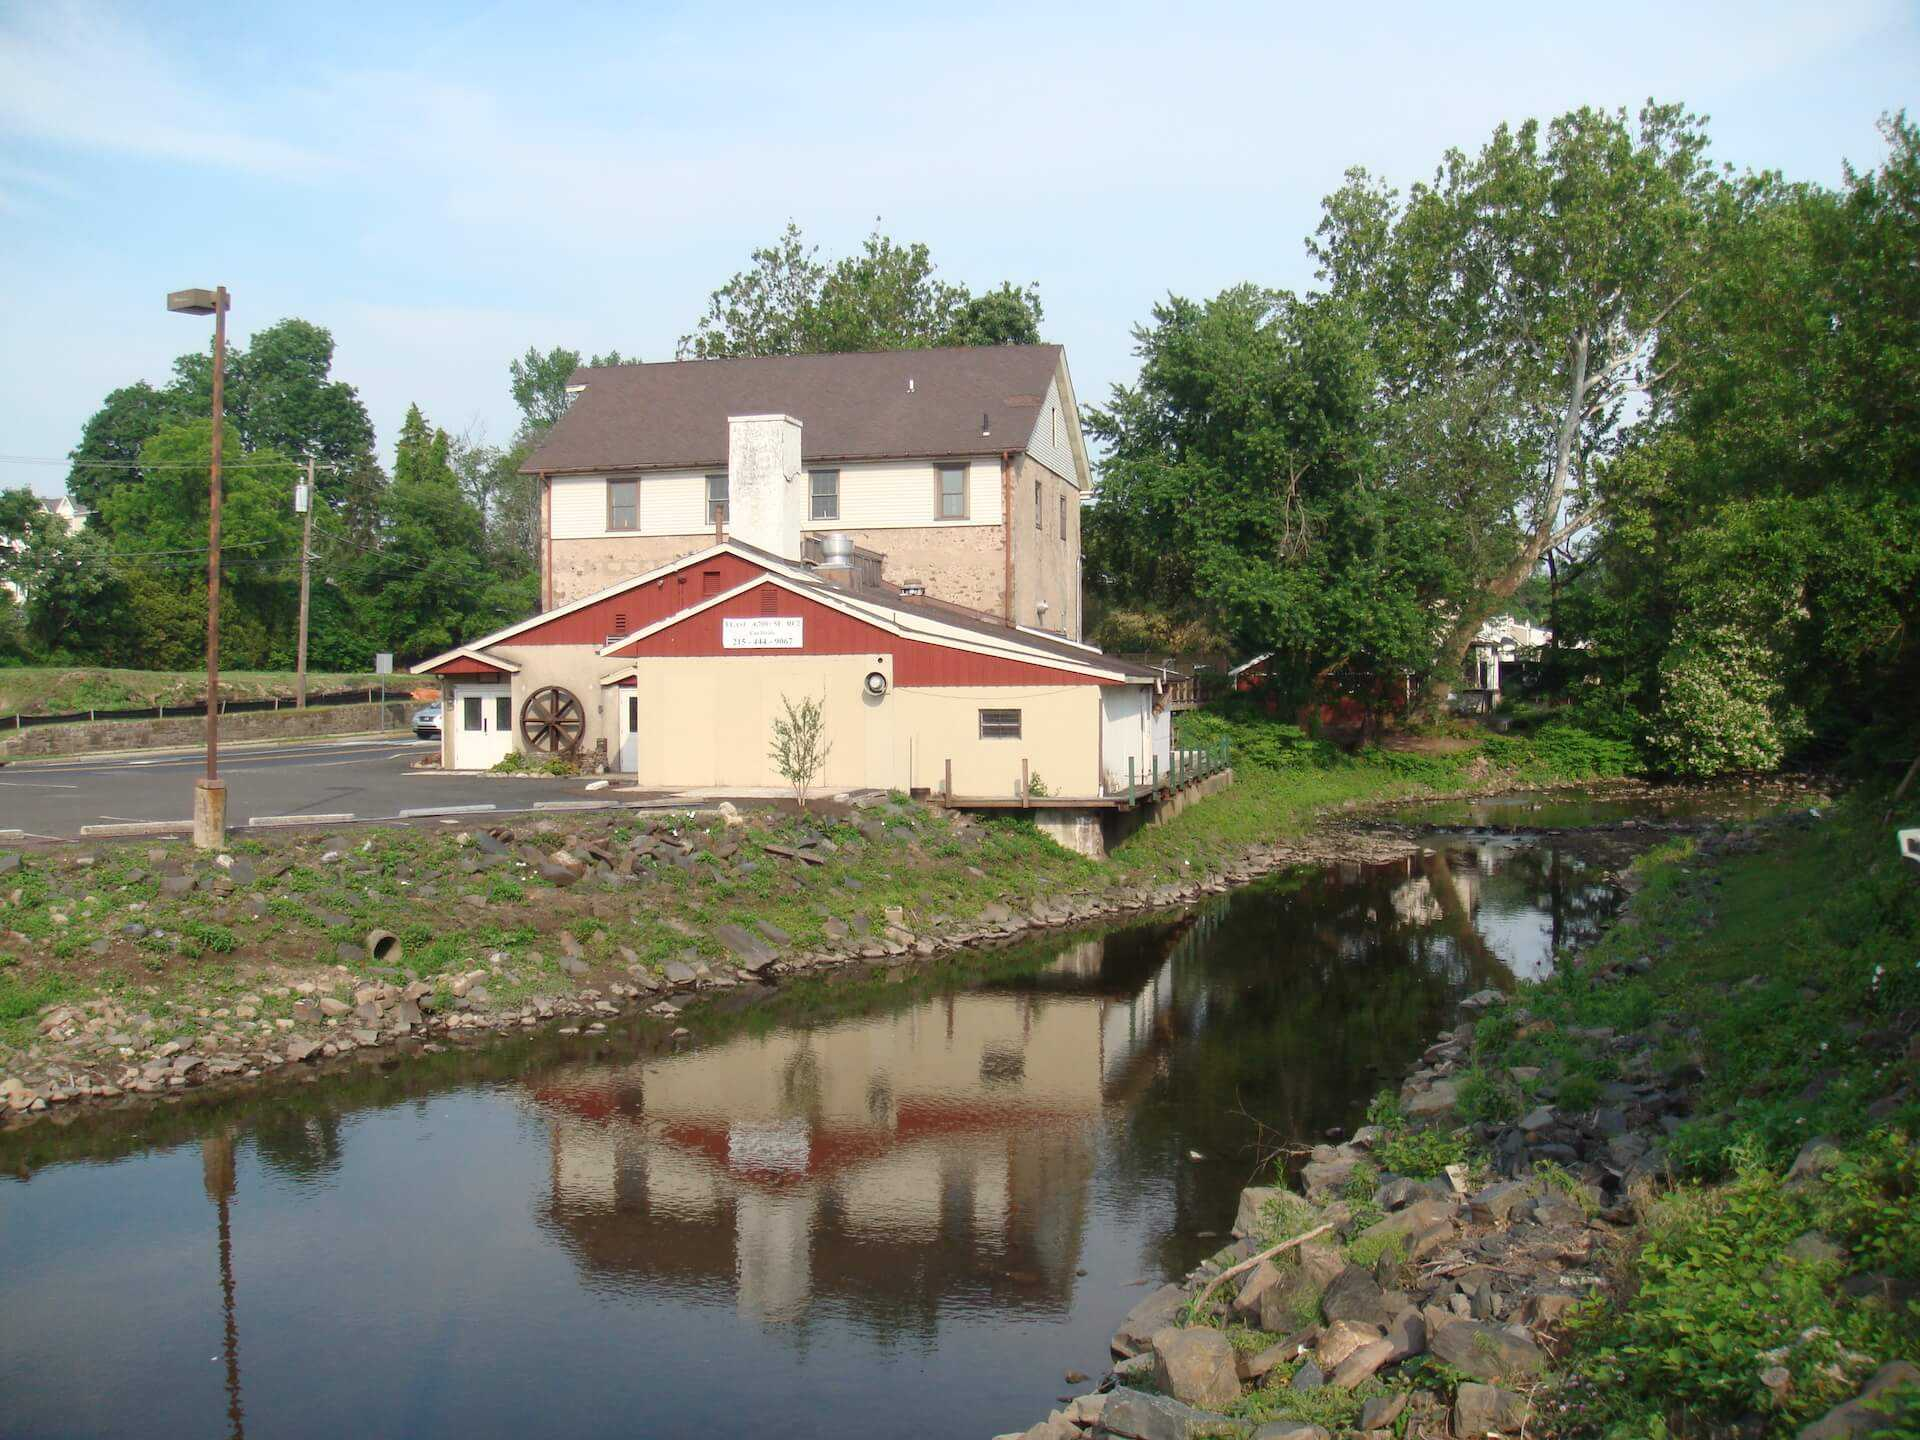 The Old Mill Business catharine ann farnen landscape architecting